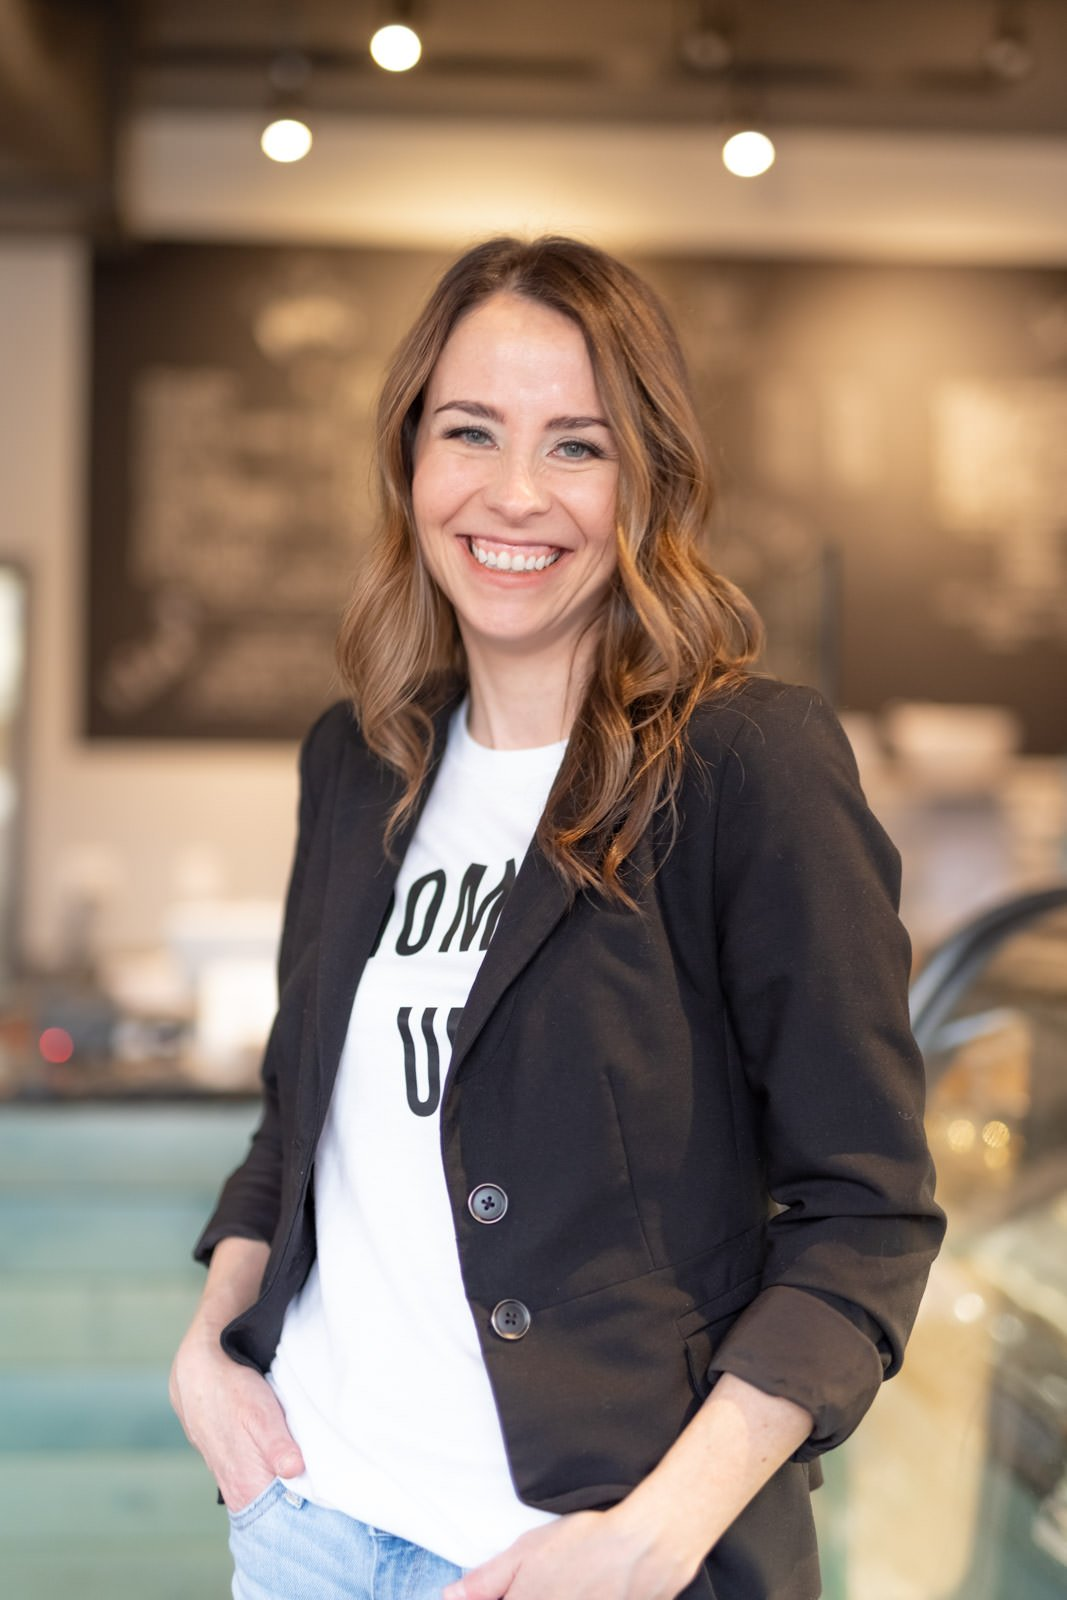 woman standing in coffee shop smiling for personal branding photoshoot